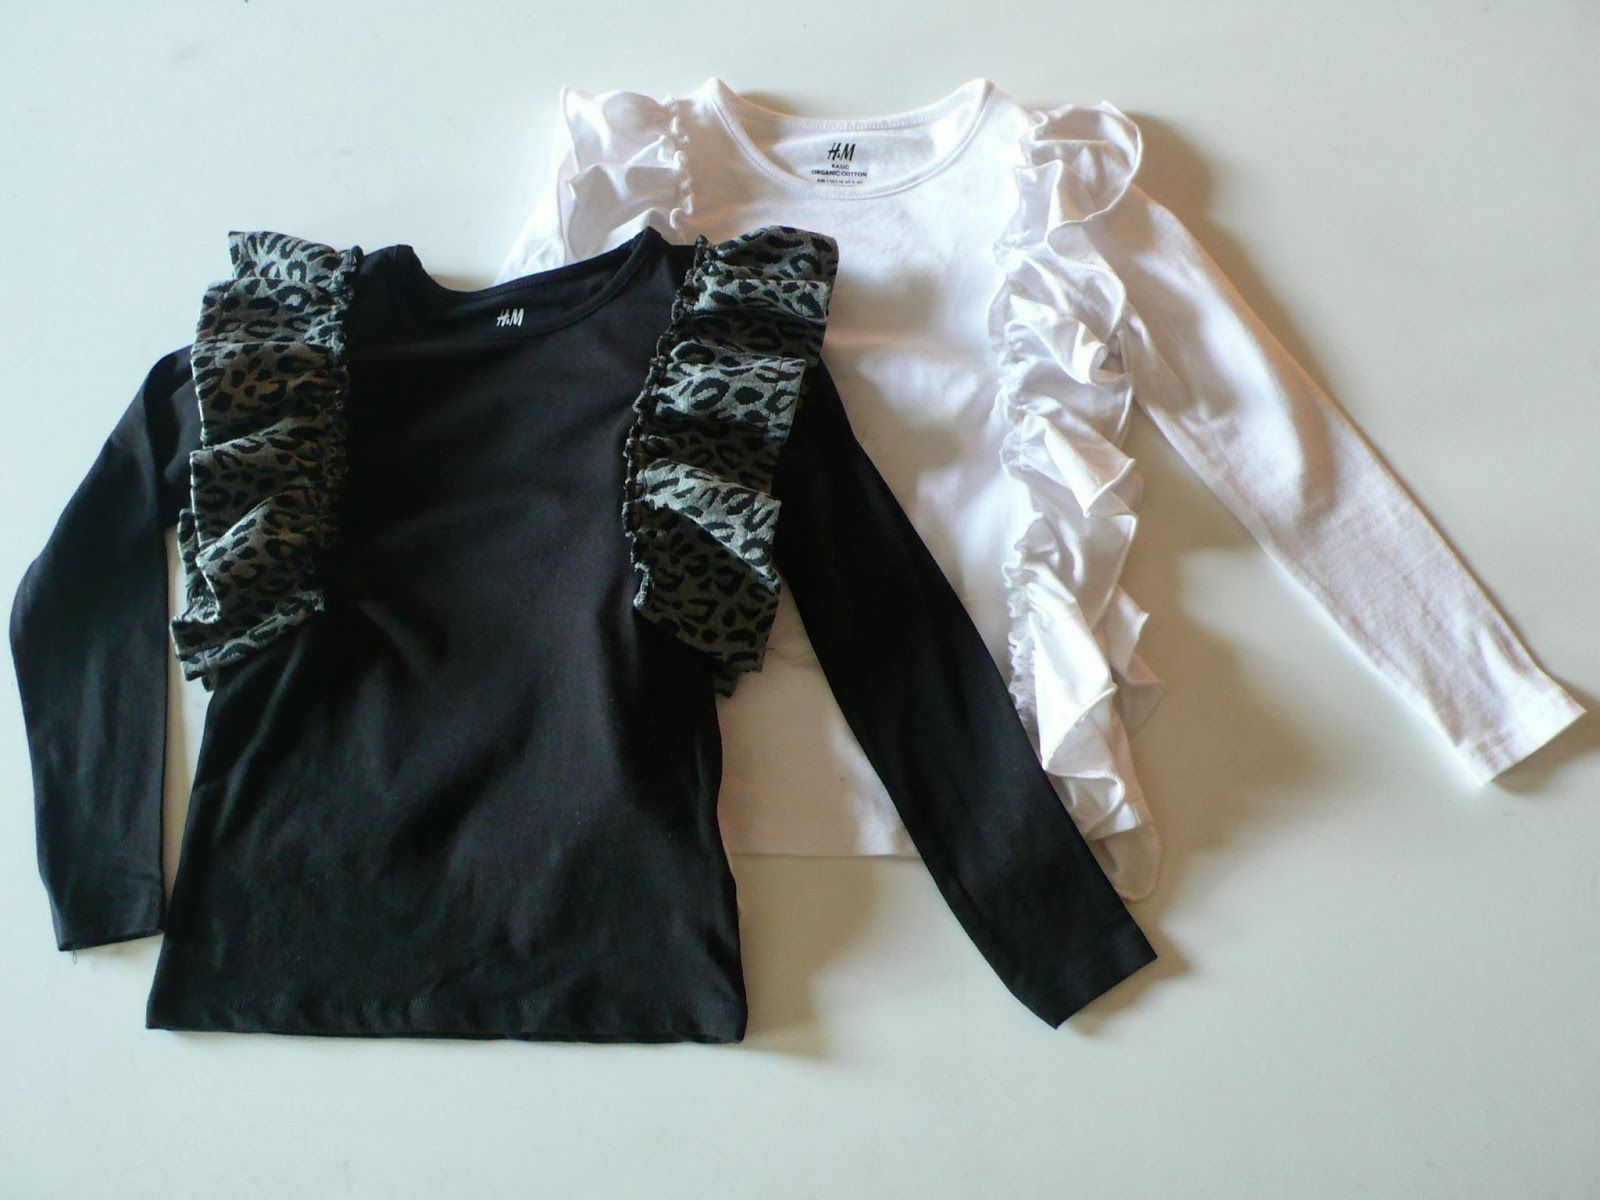 Tutorial: frilly shirts